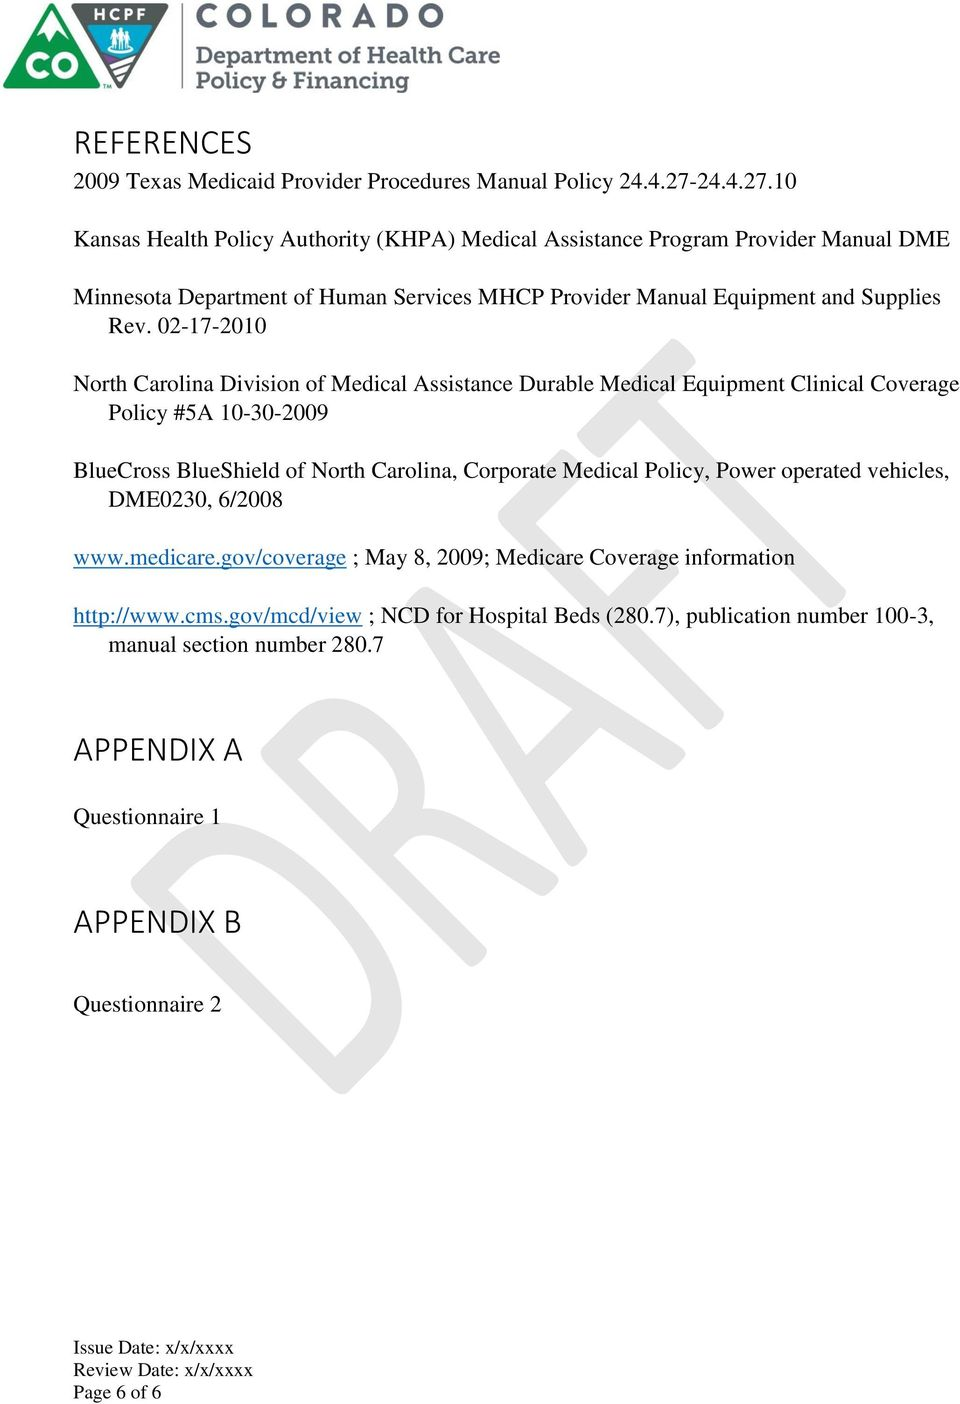 02-17-2010 North Carolina Division of Medical Assistance Durable Medical Equipment Clinical Coverage Policy #5A 10-30-2009 BlueCross BlueShield of North Carolina, Corporate Medical